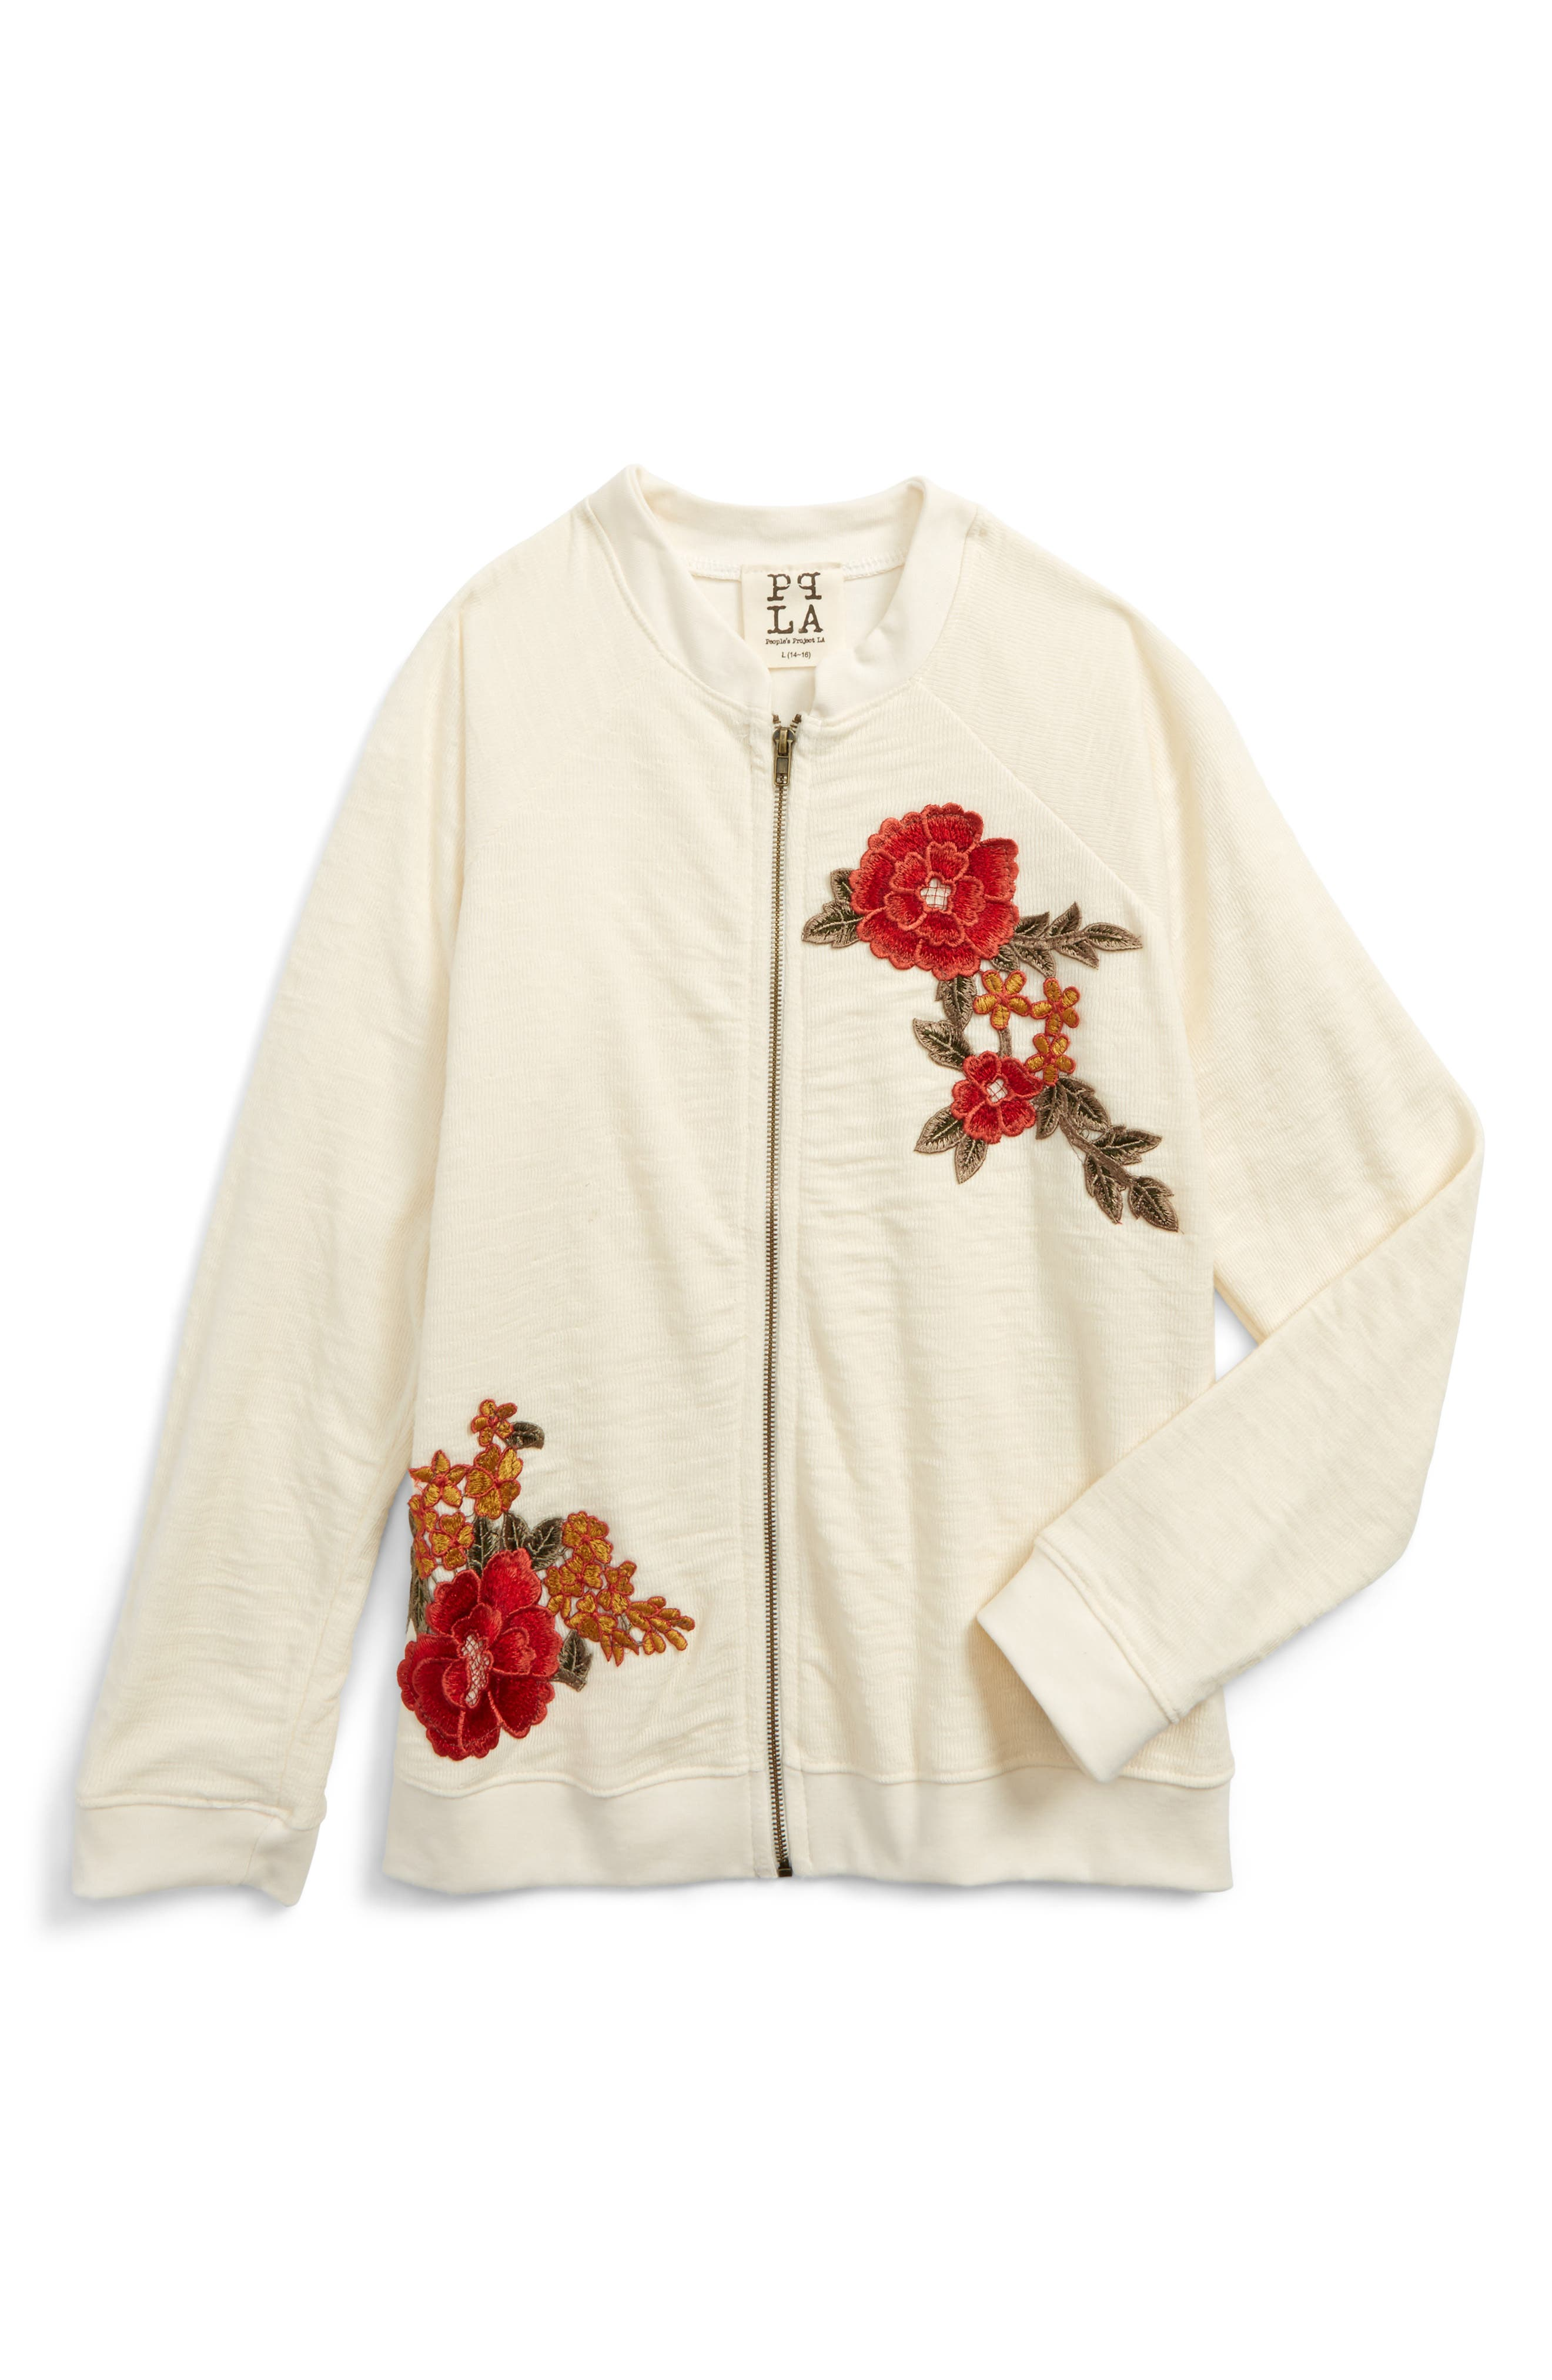 Alternate Image 1 Selected - PPLA Floral Appliqué Knit Jacket (Big Girls)